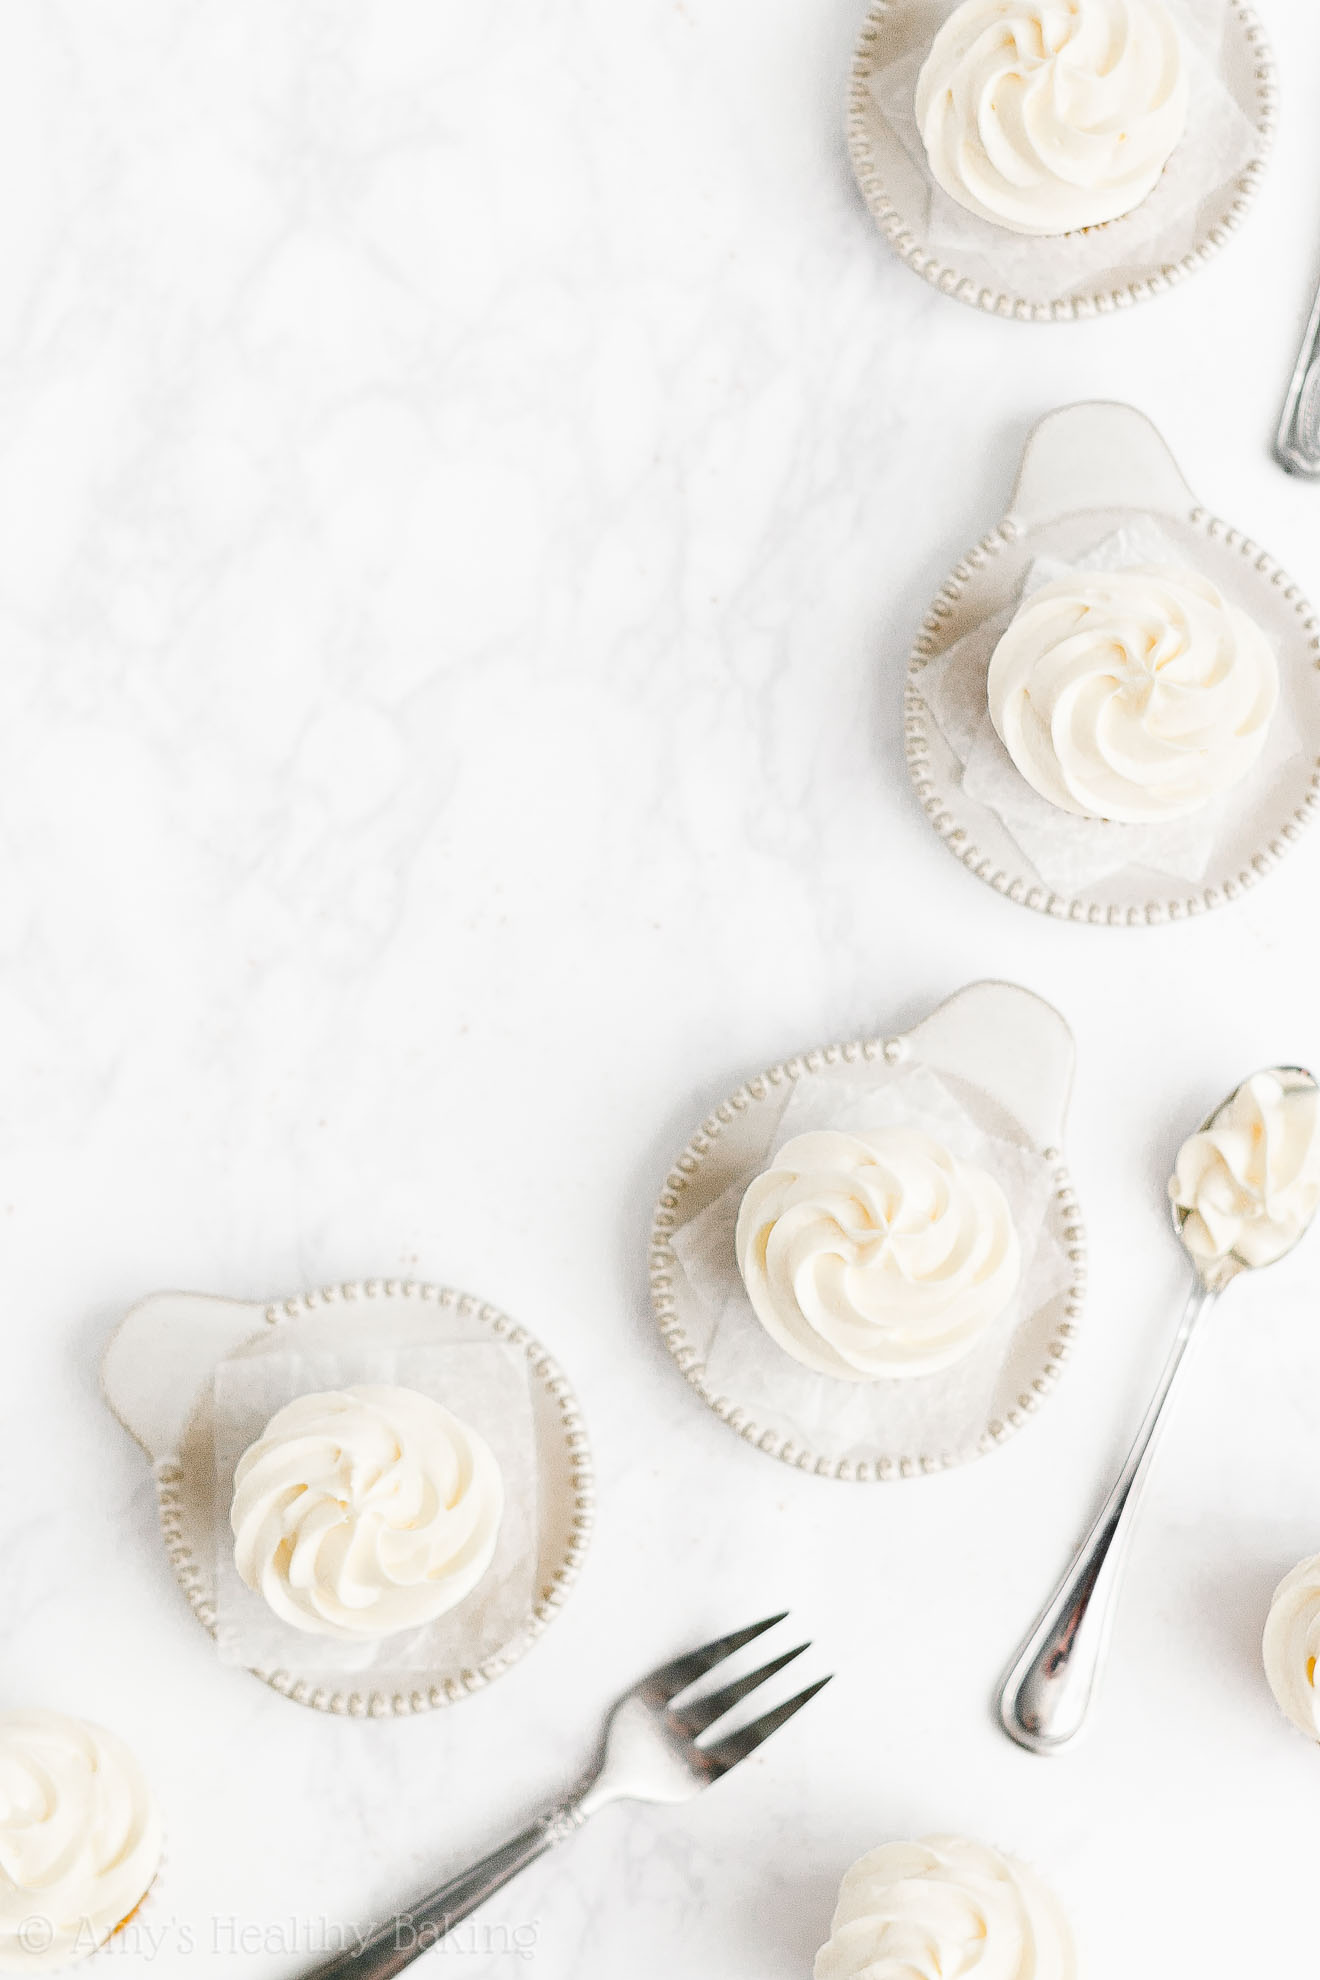 Healthy Mini Pumpkin Cupcakes + Sugar Free Greek Yogurt Cream Cheese Frosting